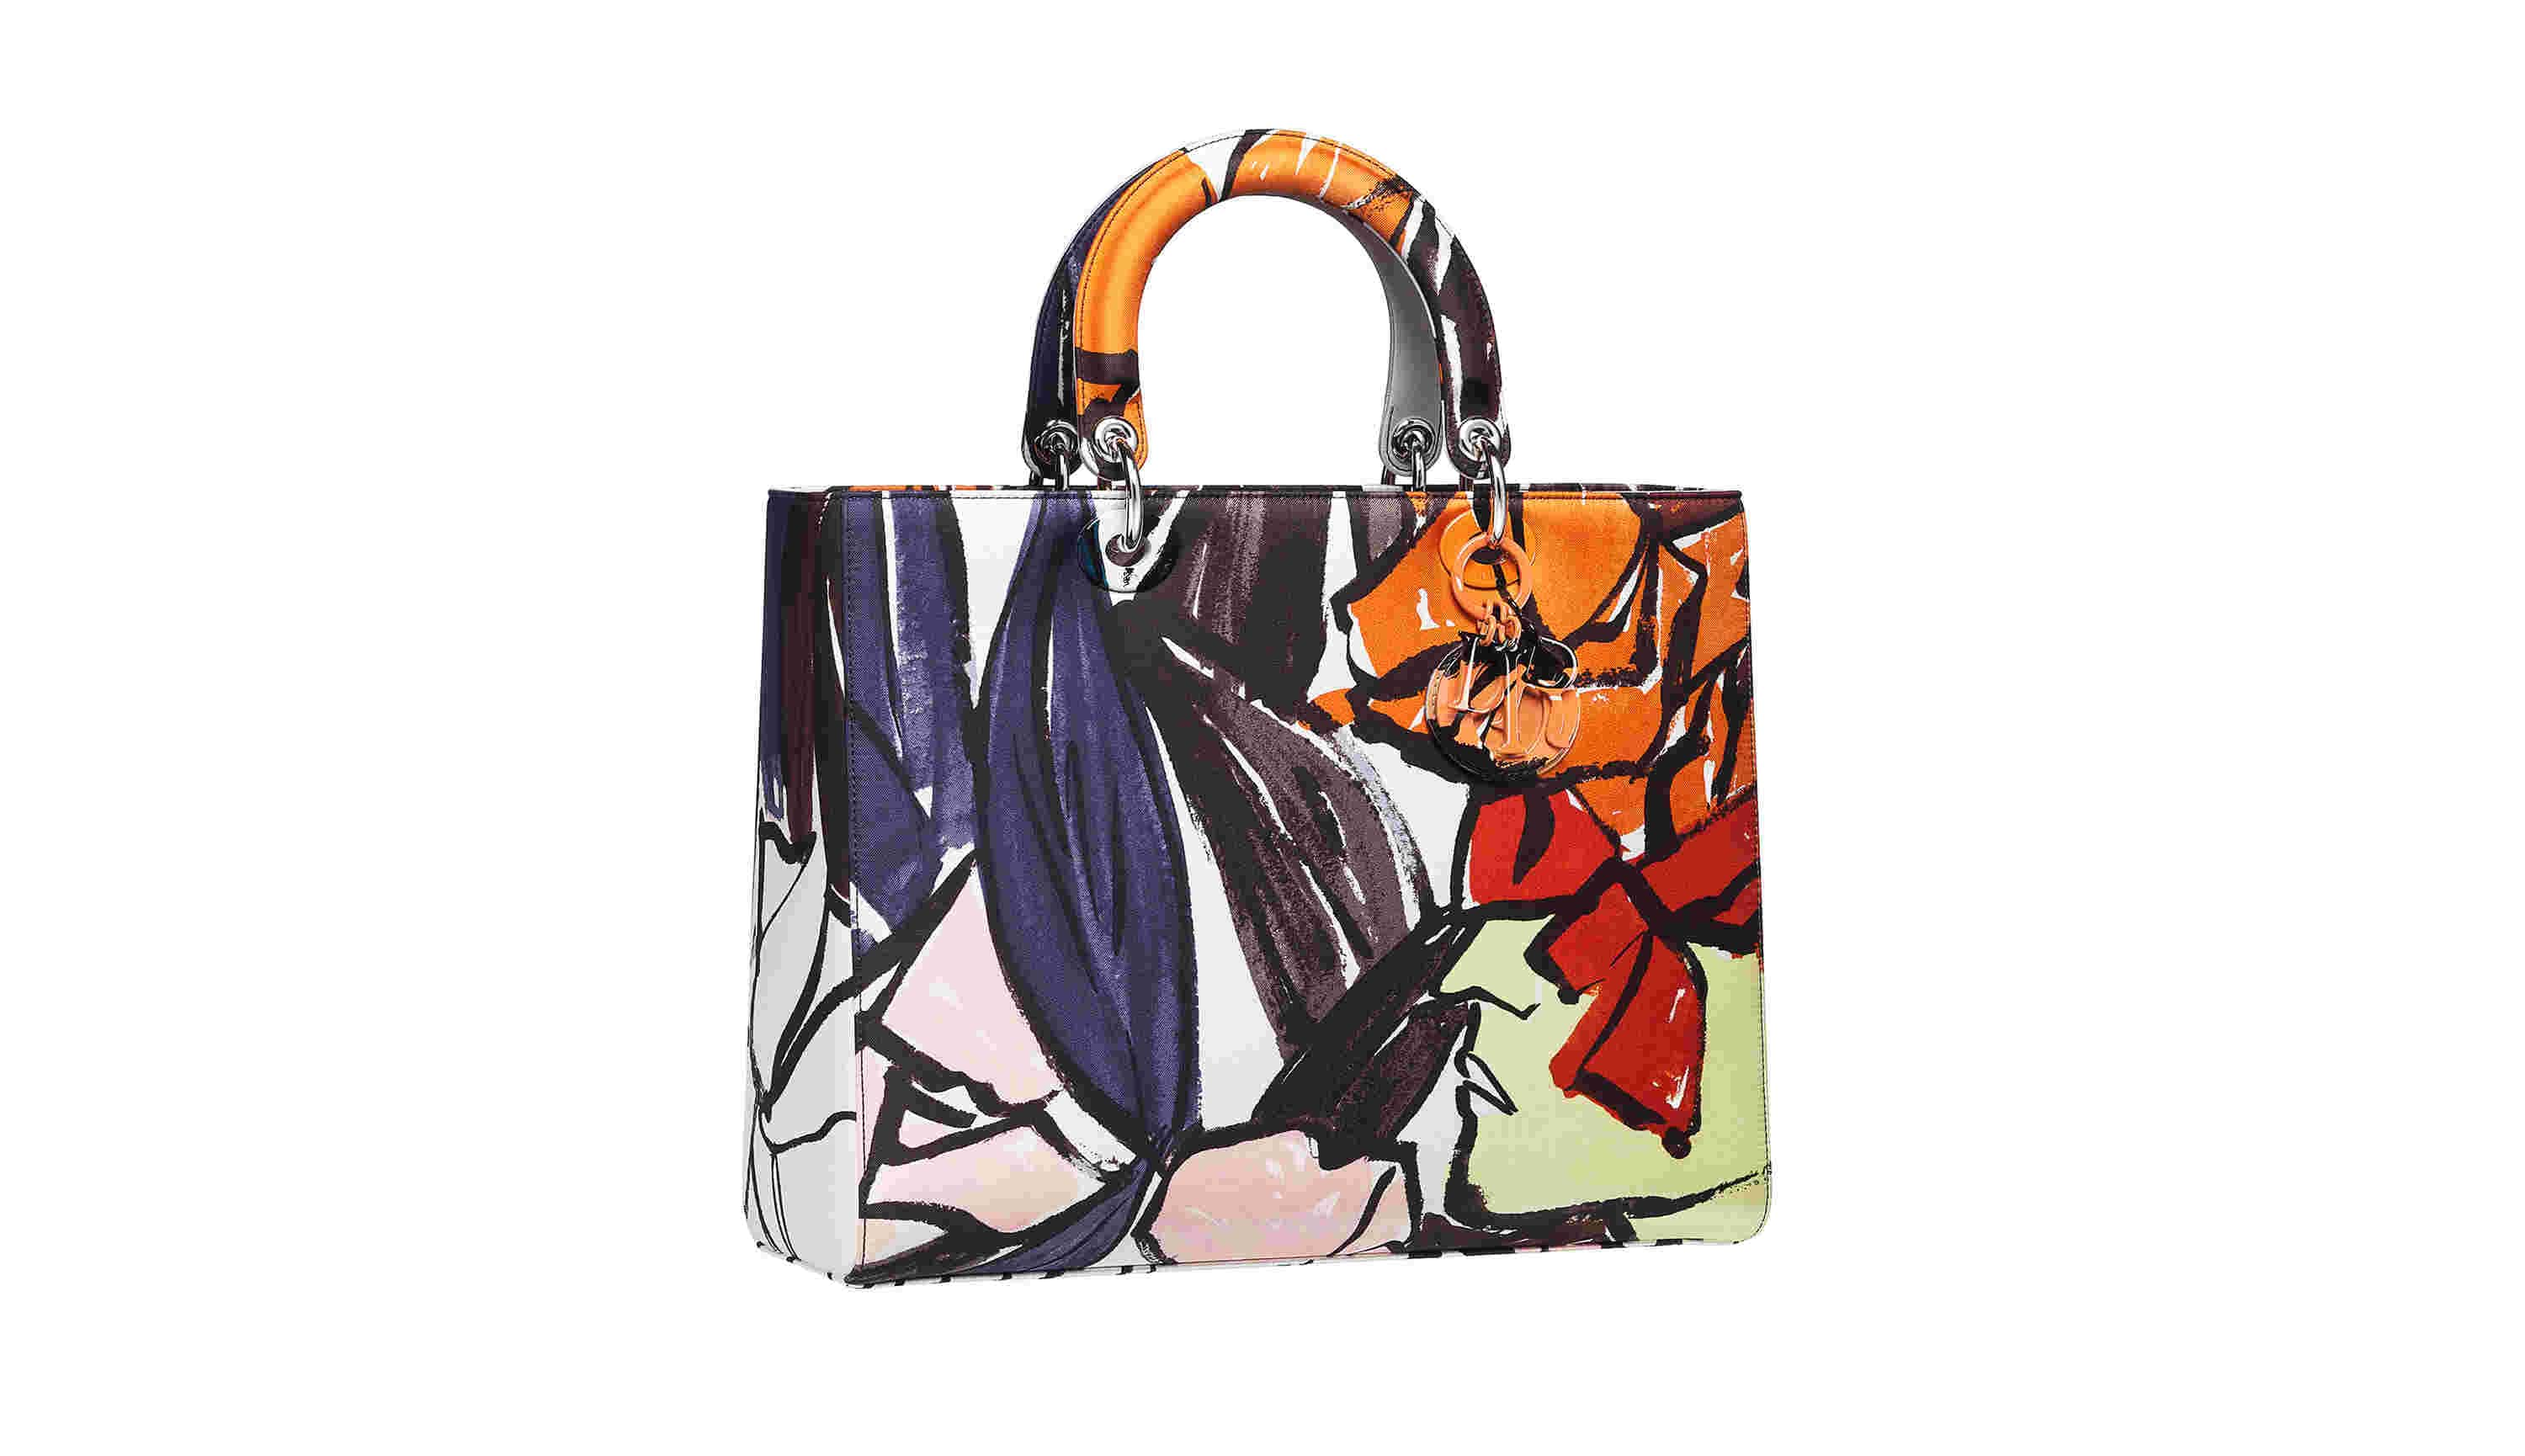 Large Lady Dior Bag in Silk Twill Printed with a Multicolour Pop Pattern, Tone on Tone Hand-painted Charms